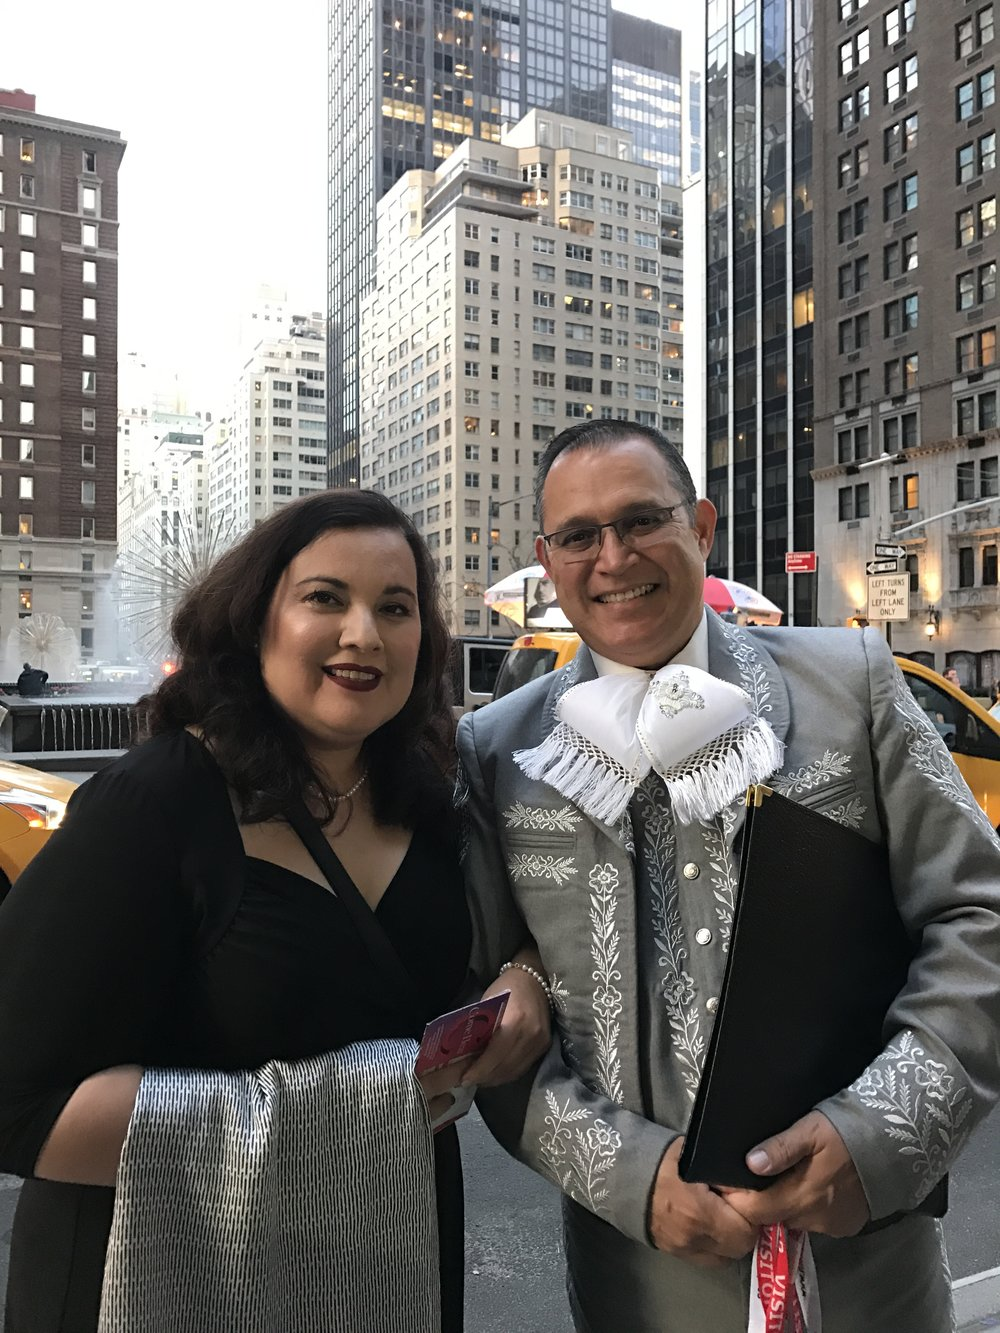 Directors Leticia and Juan Morales, on their way to Manhattan's Carnegie Hall, to witness the debut performance of their daughters, Xóchitl and Anaí Morales, with youth Mariachi Mestizo